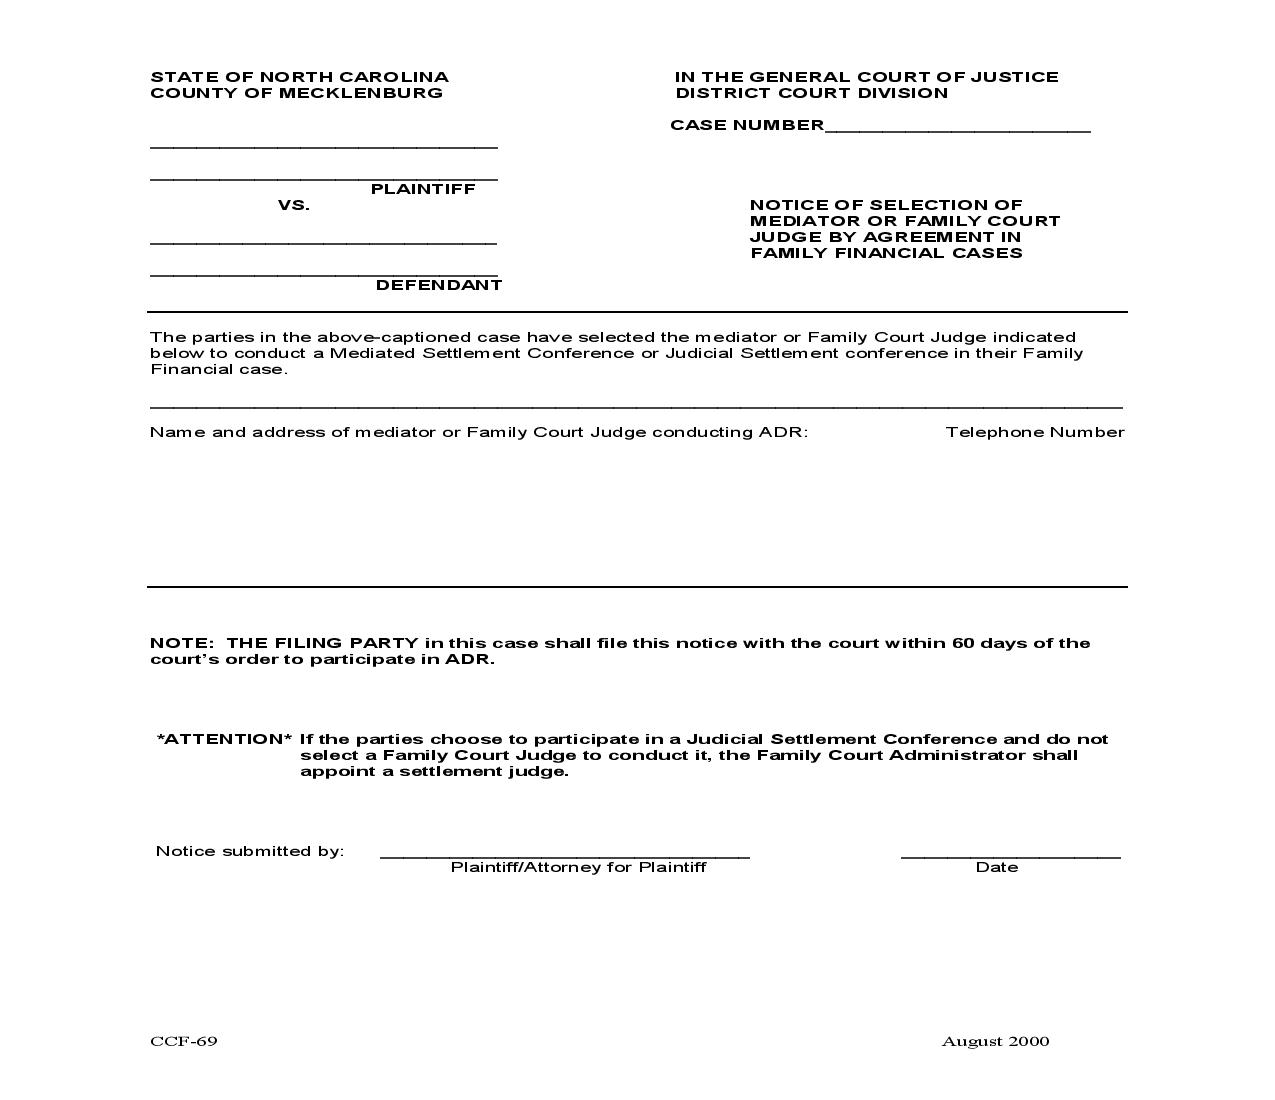 Notice Of Selection Of Mediator Or Family Court Judge By Agreement In Family Financial Cases {CCF-69} | Pdf Fpdf Doc Docx | North Carolina